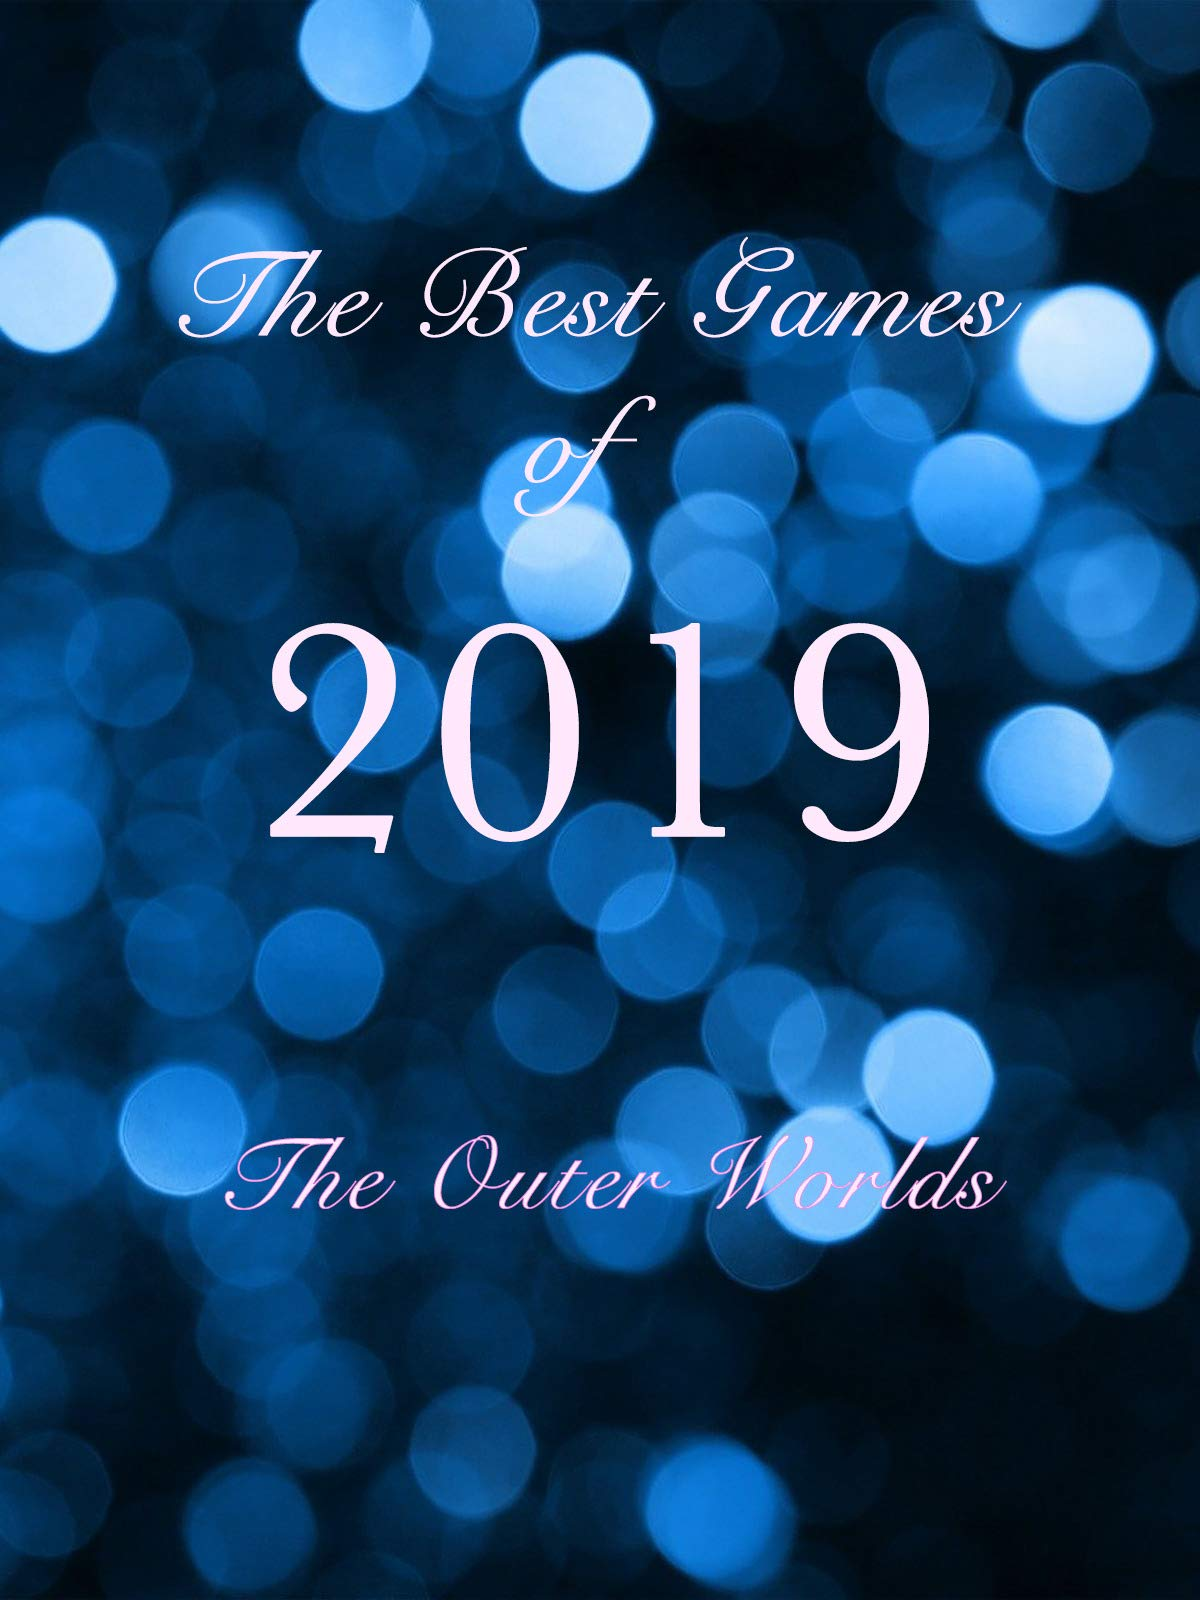 The Best Games of 2019 The Outer Worlds